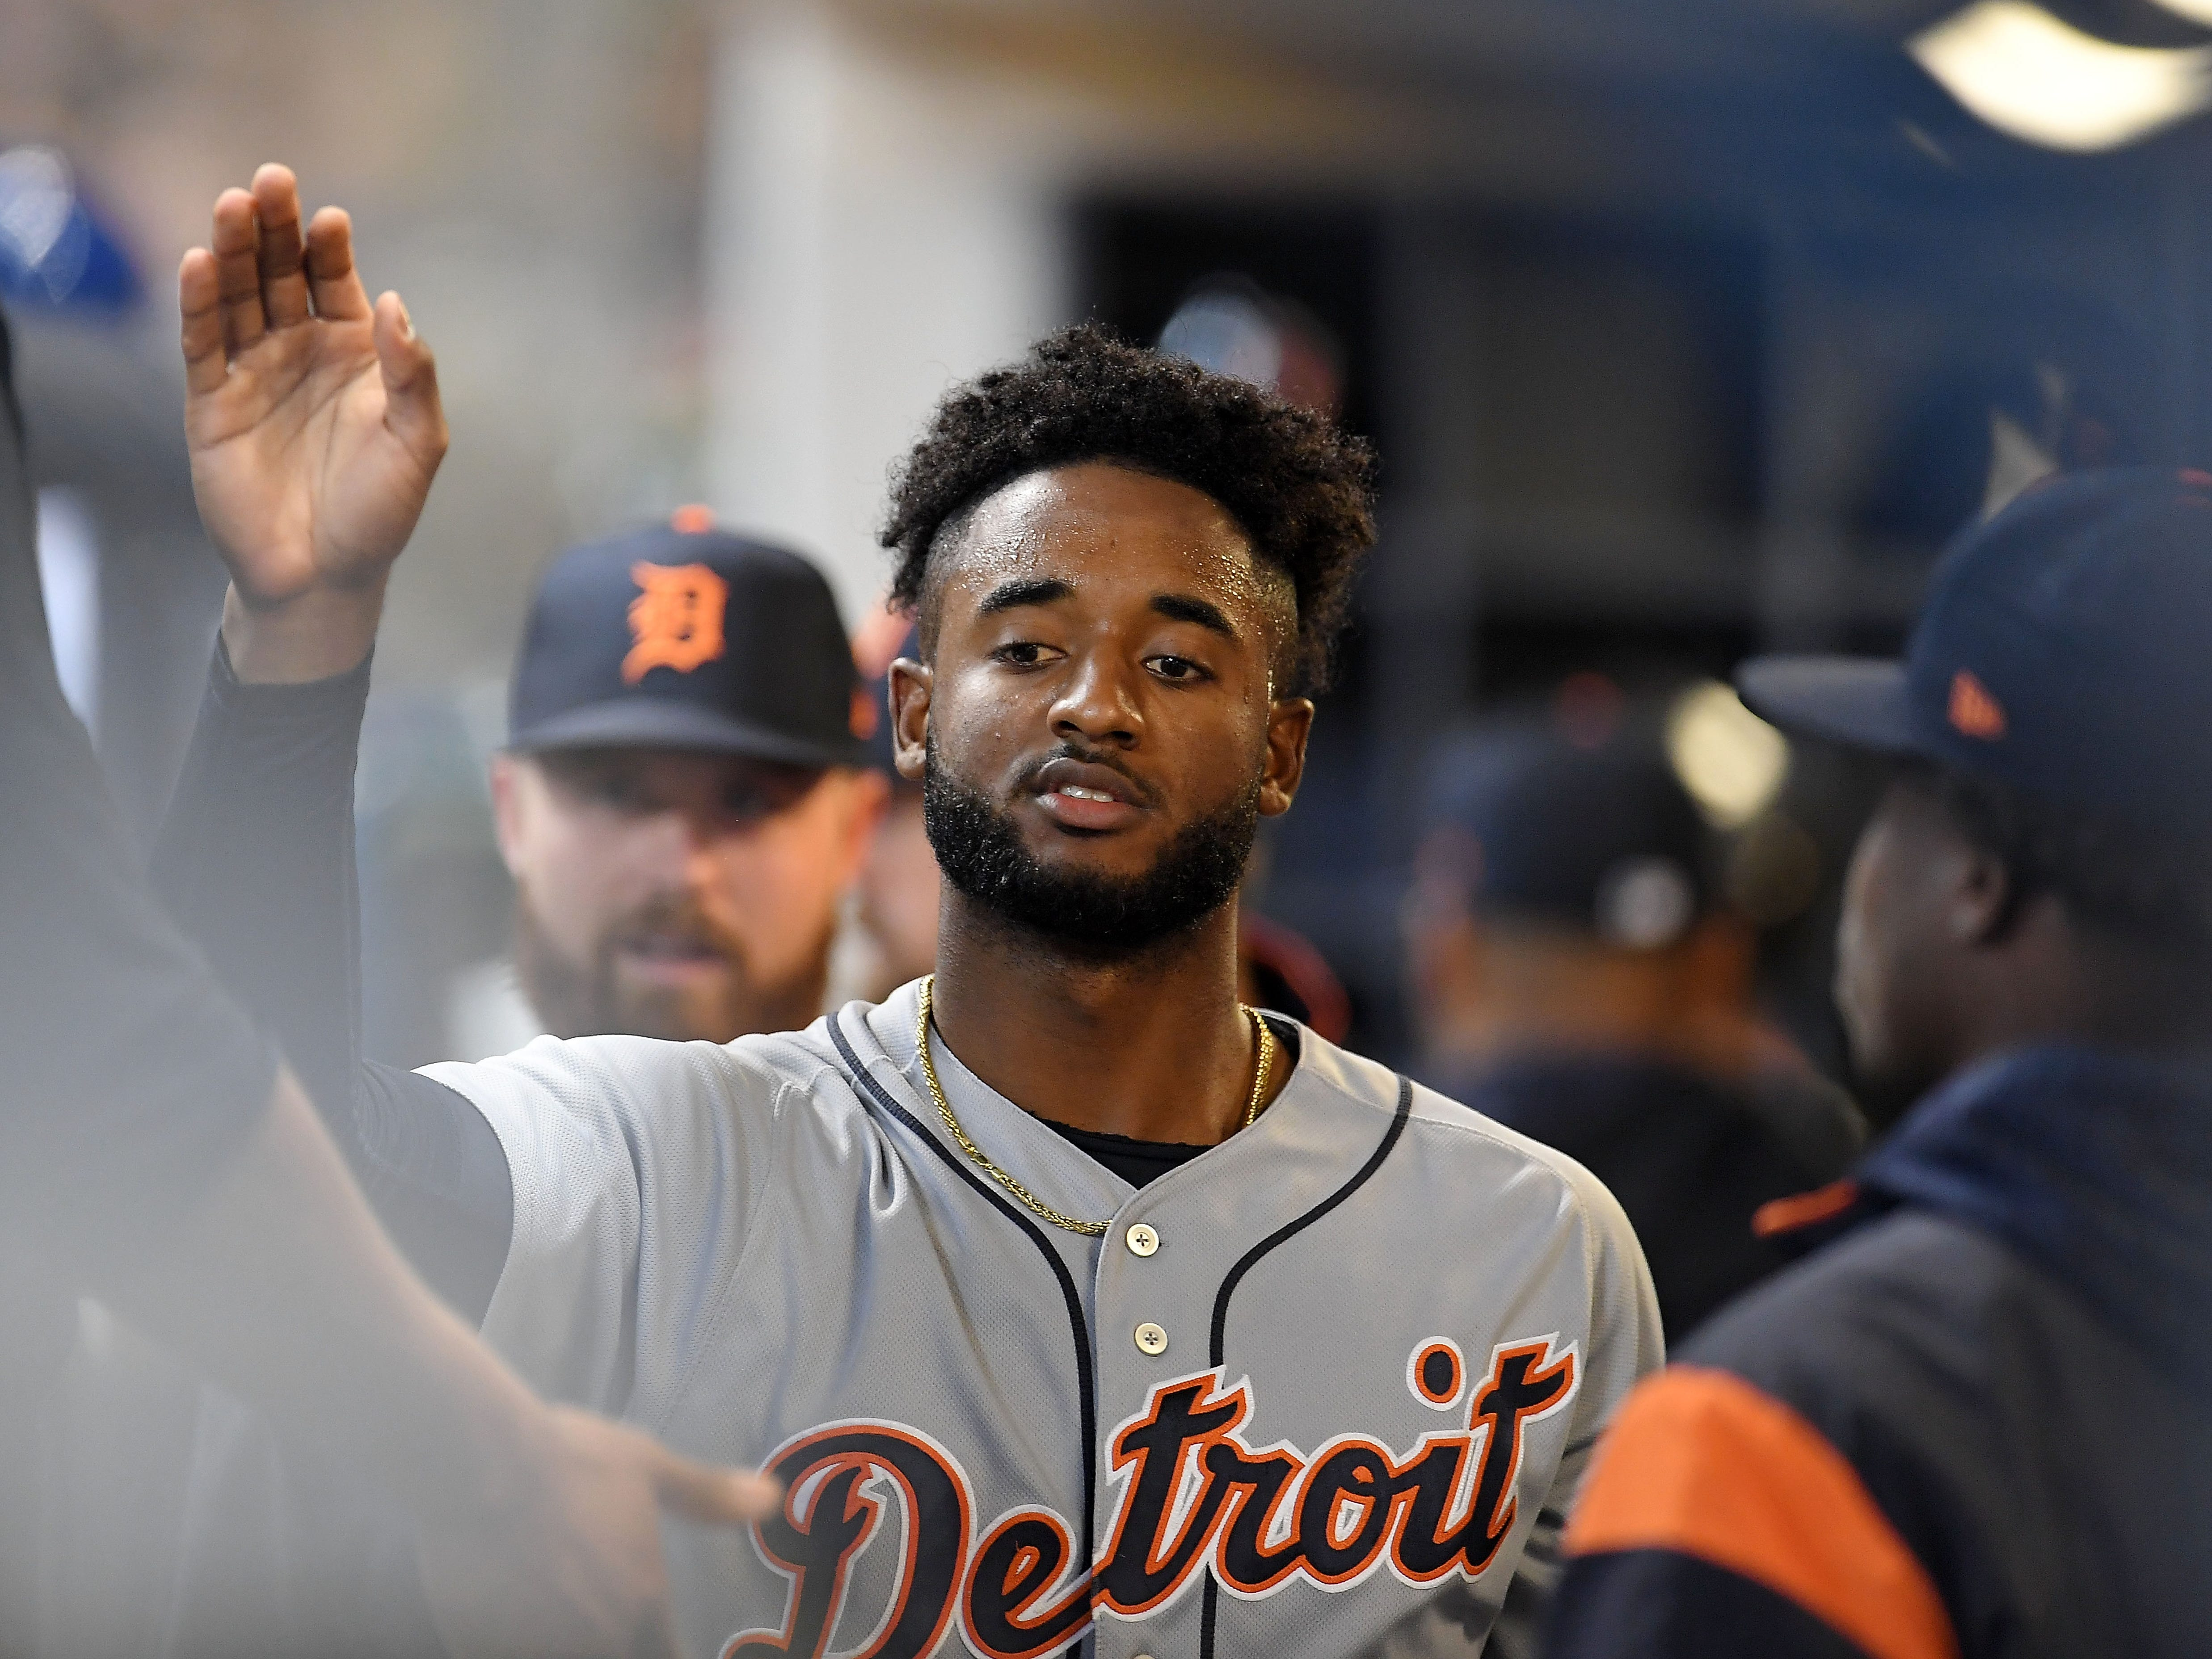 Niko Goodrum of the Detroit Tigers is congratulated by teammates after scoring a run against the Milwaukee Brewers during the first inning at Miller Park on Sept. 28, 2018 in Milwaukee.